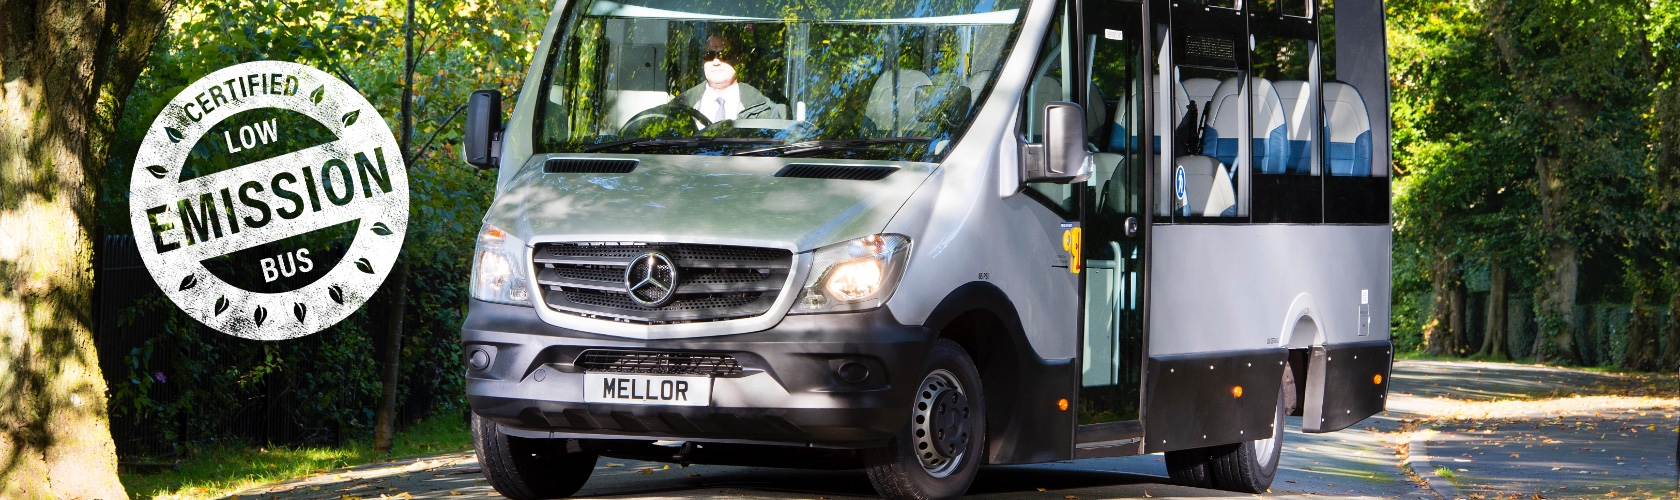 Mellor Small Buses